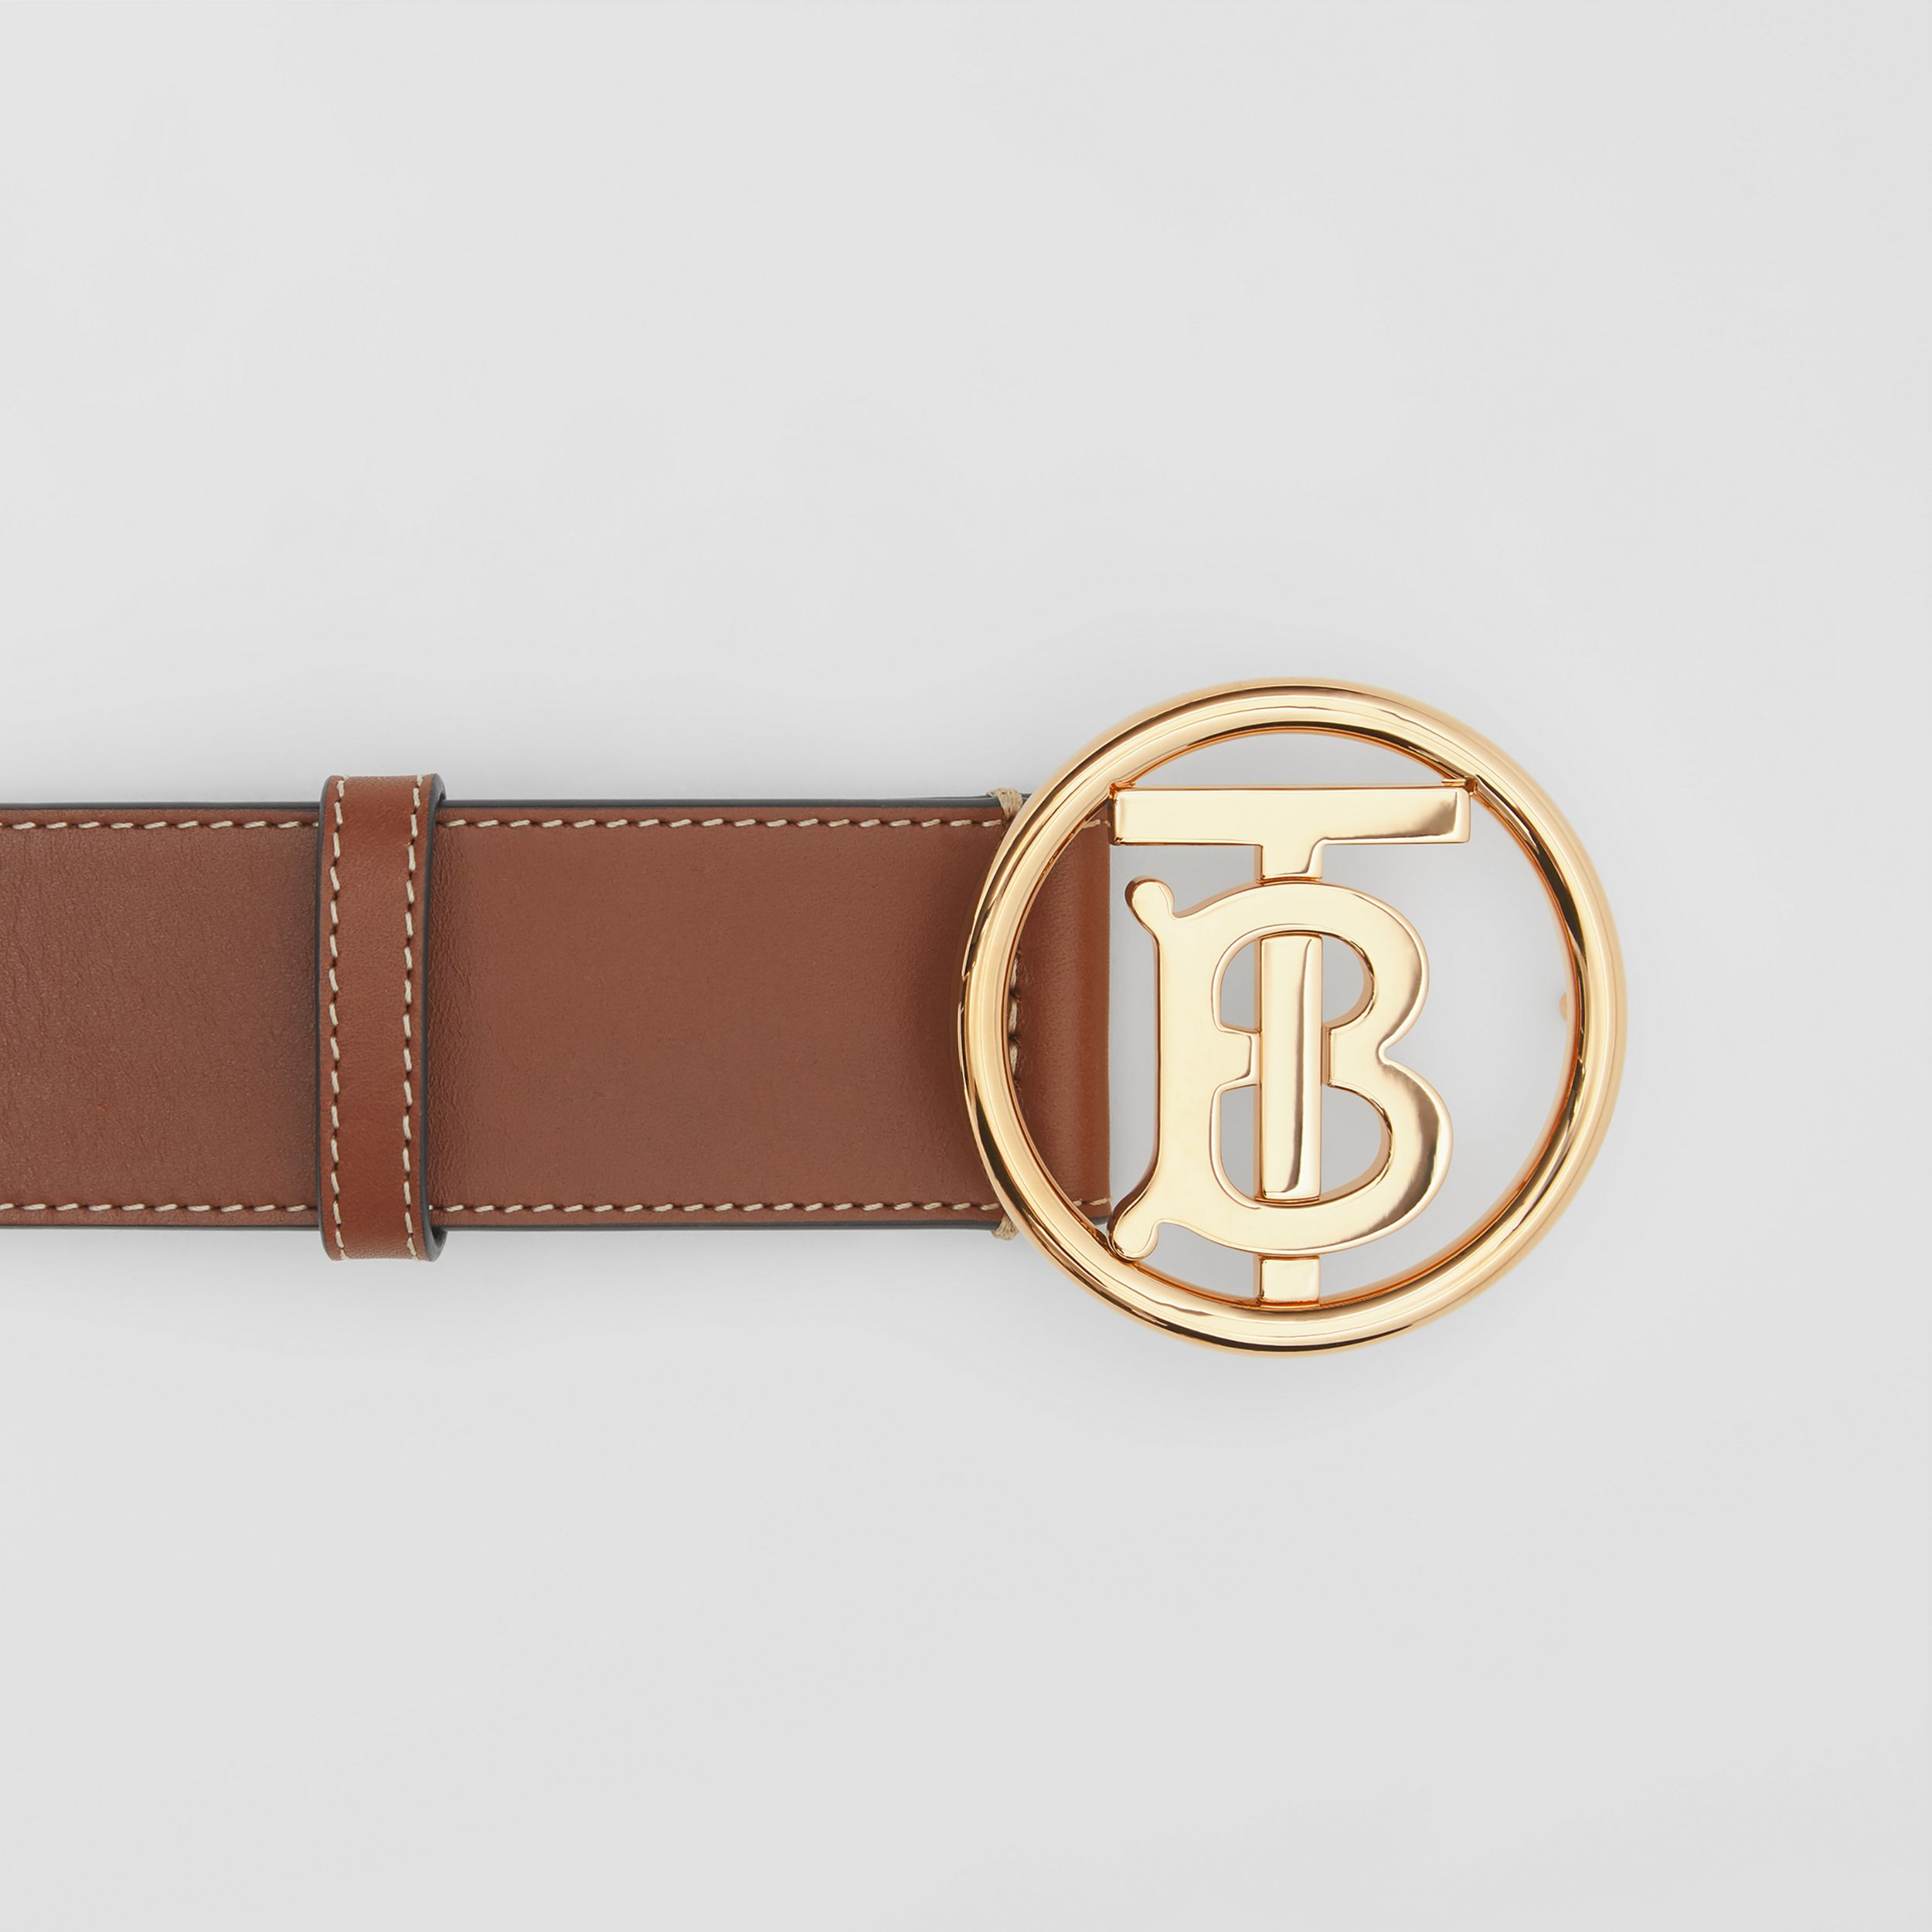 Monogram Motif Topstitched Leather Belt in Tan - Men | Burberry - 2